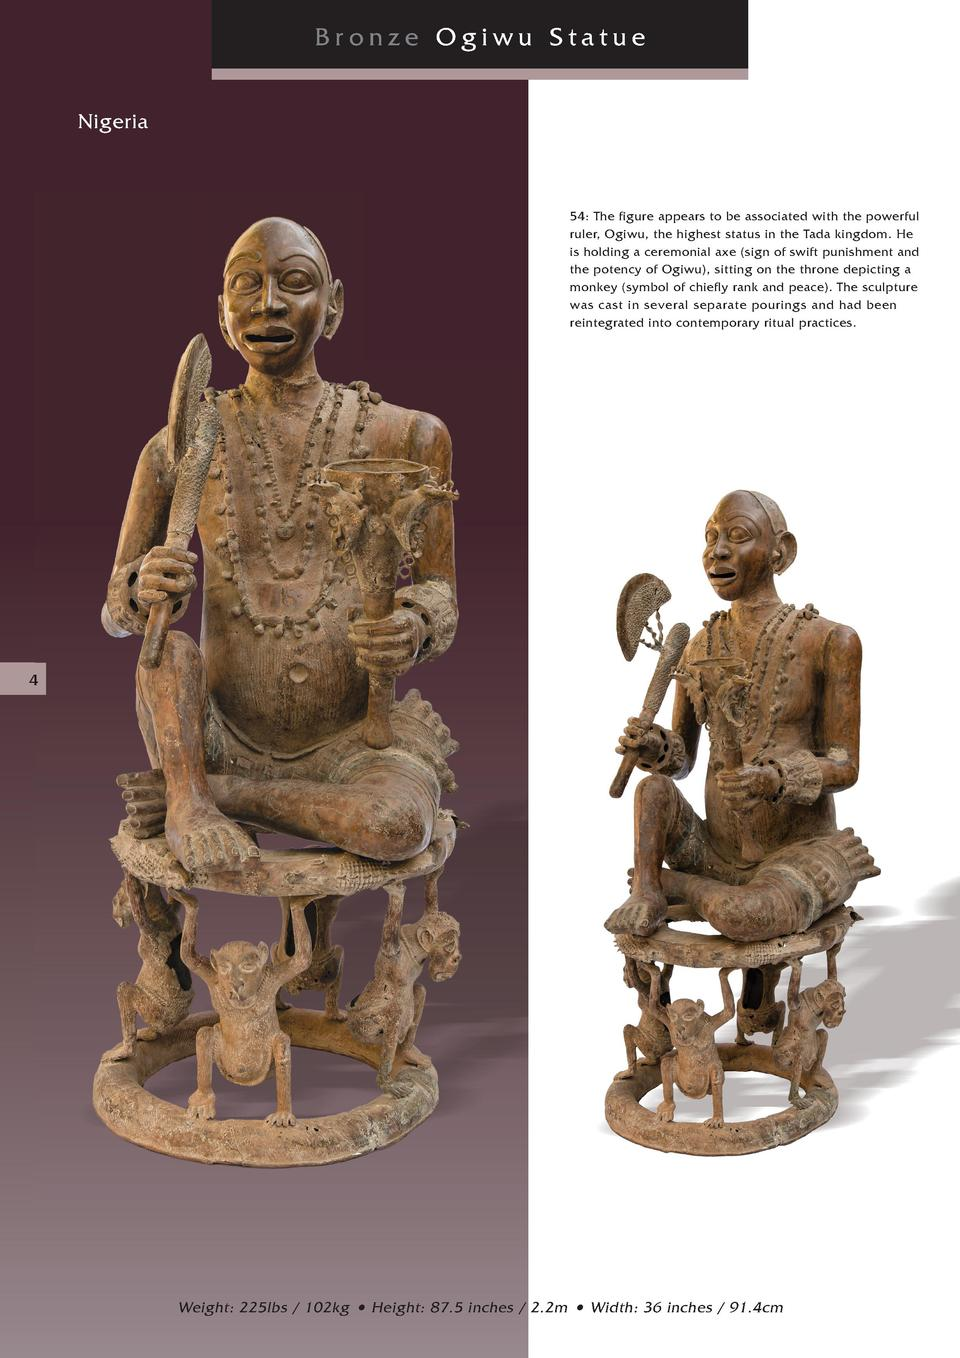 Bronze Ogiwu Statue Nigeria  54  The figure appears to be associated with the powerful ruler, Ogiwu, the highest status in...